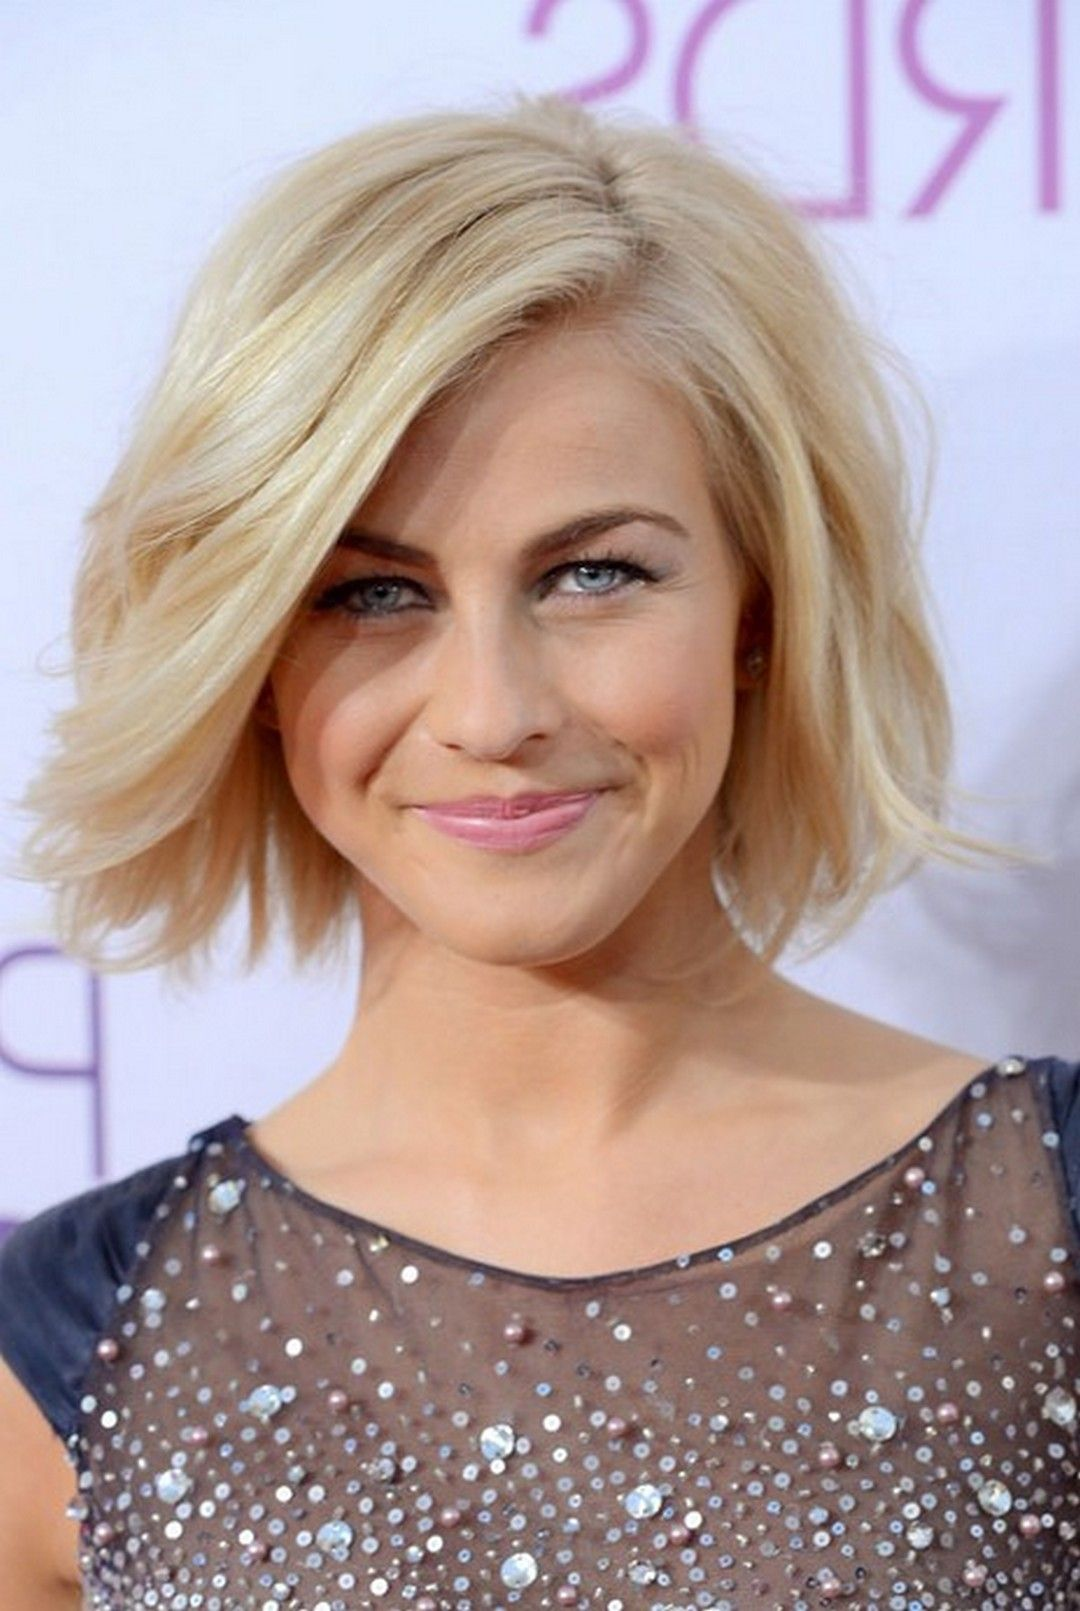 Cool perfect blonde color hairstyle for short hair awesome